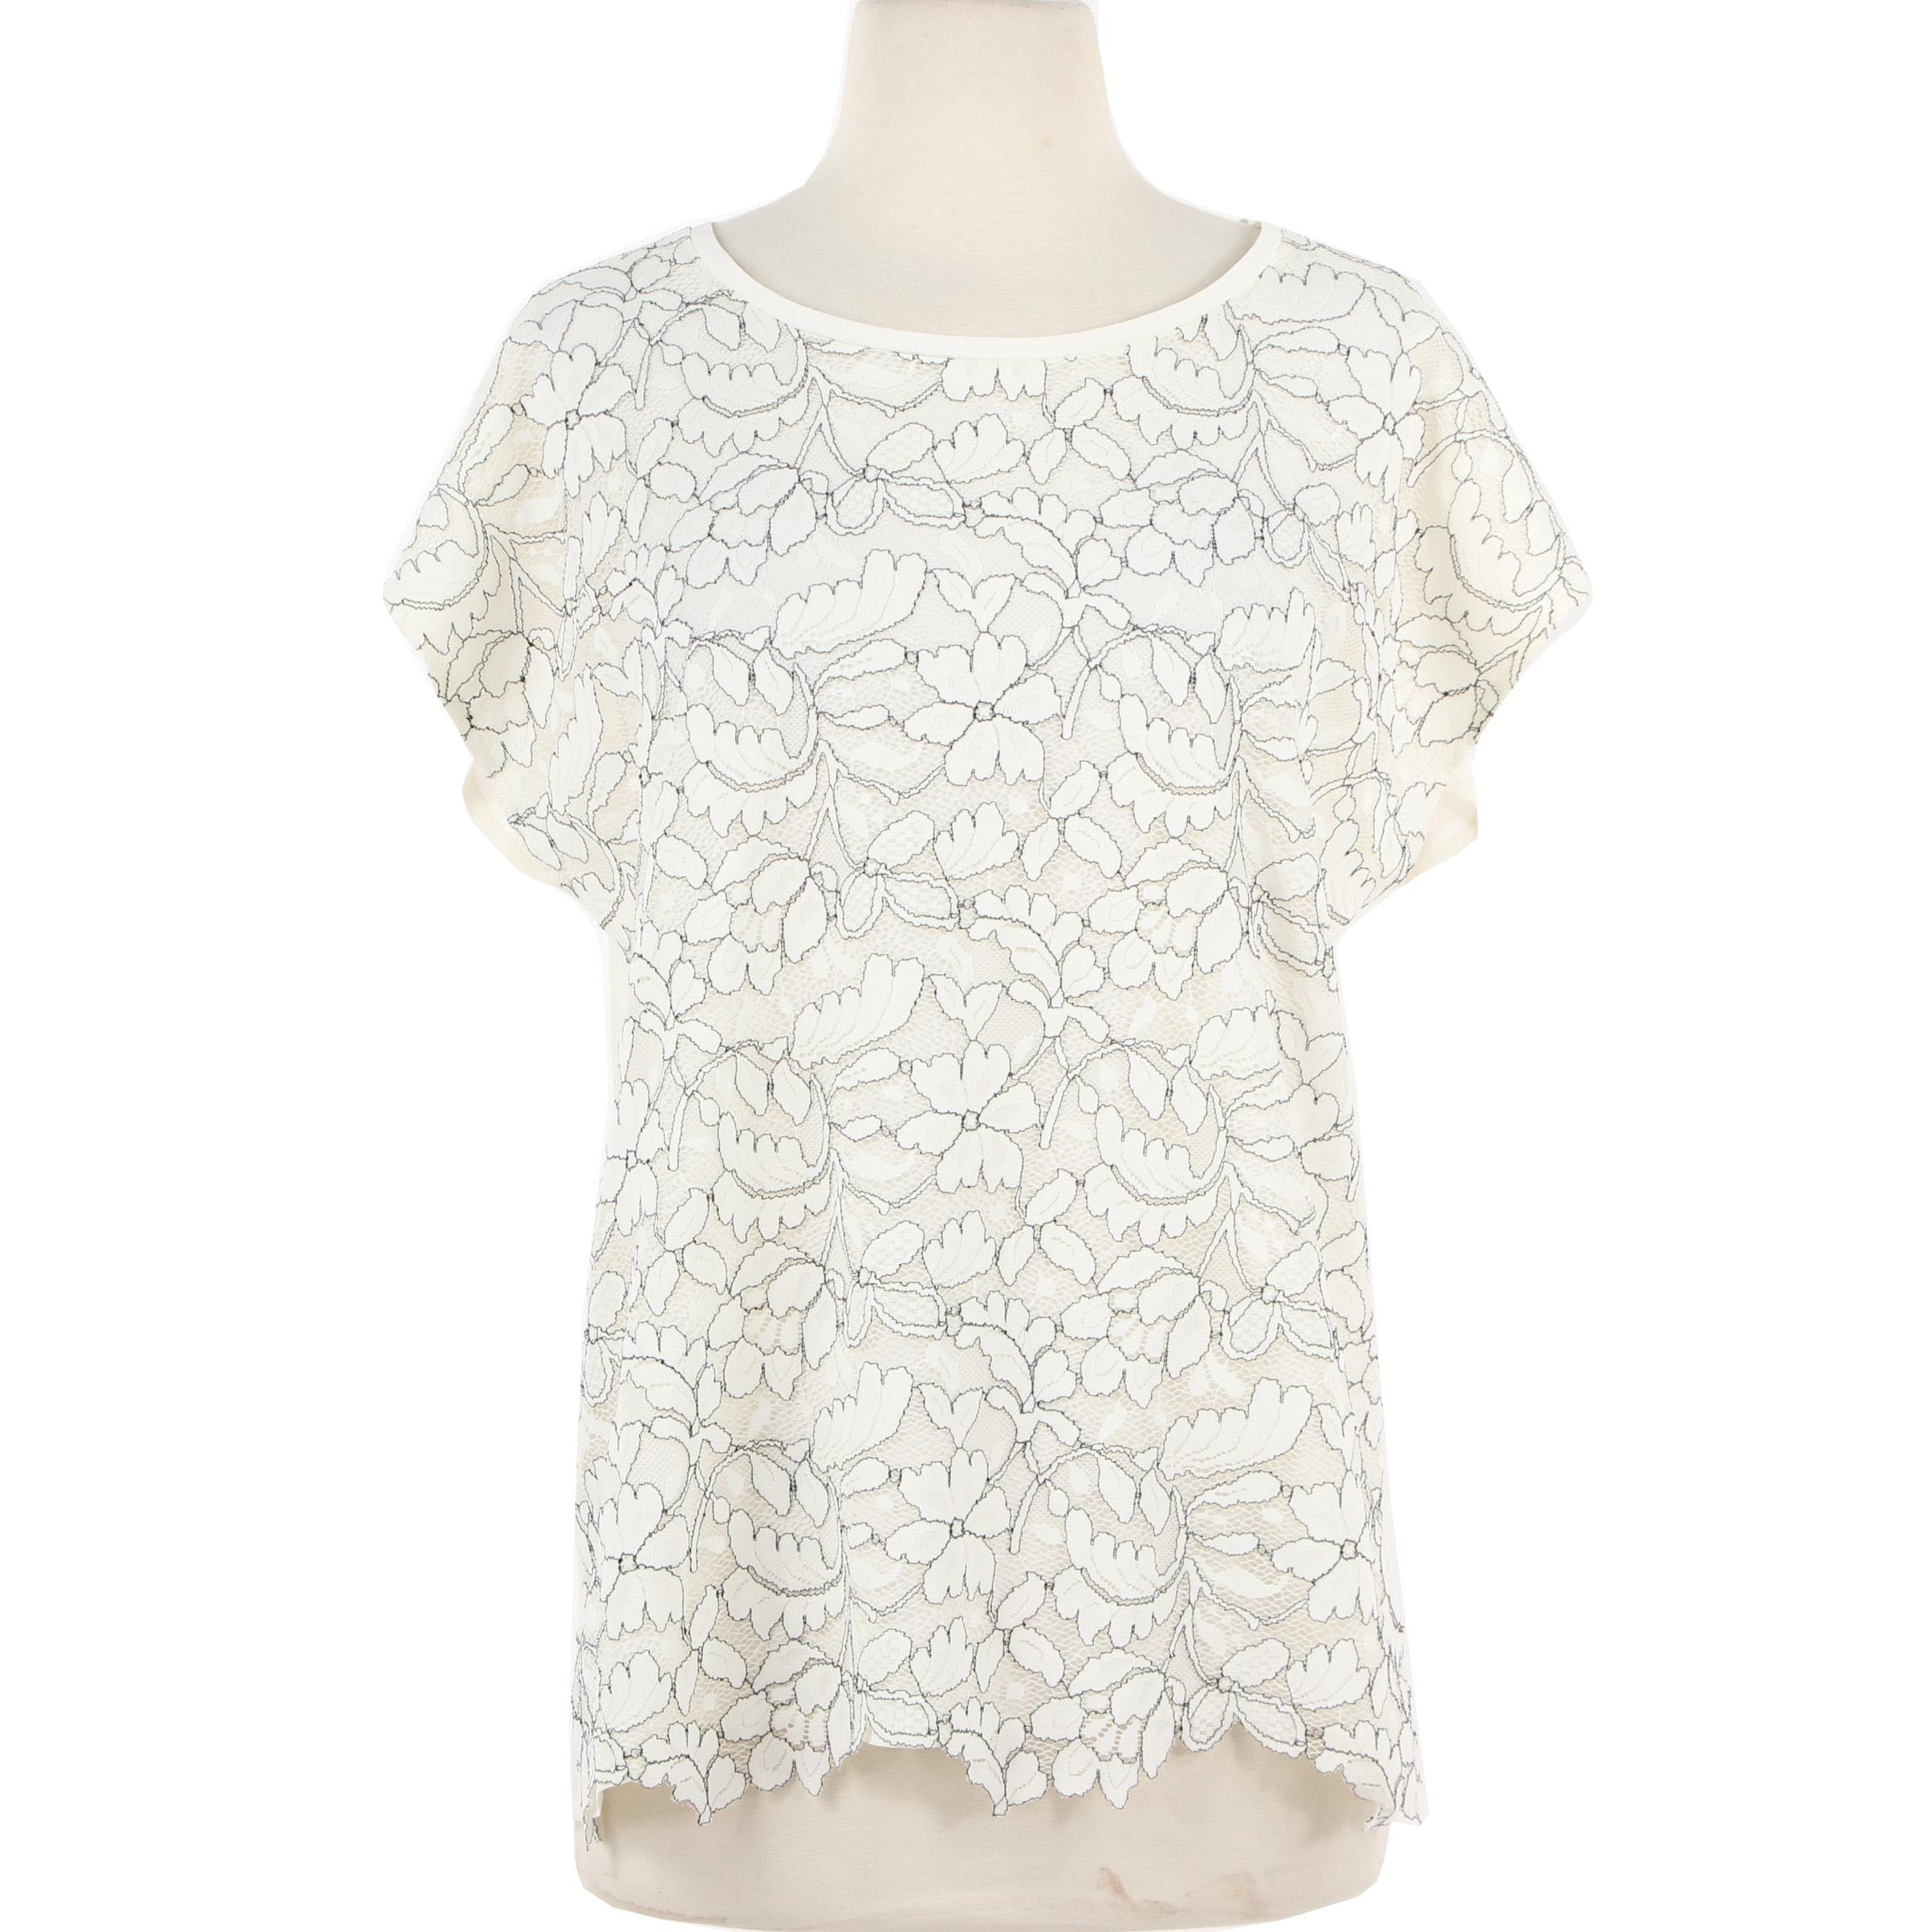 Blue Les Copains Off-White Floral Lace Top